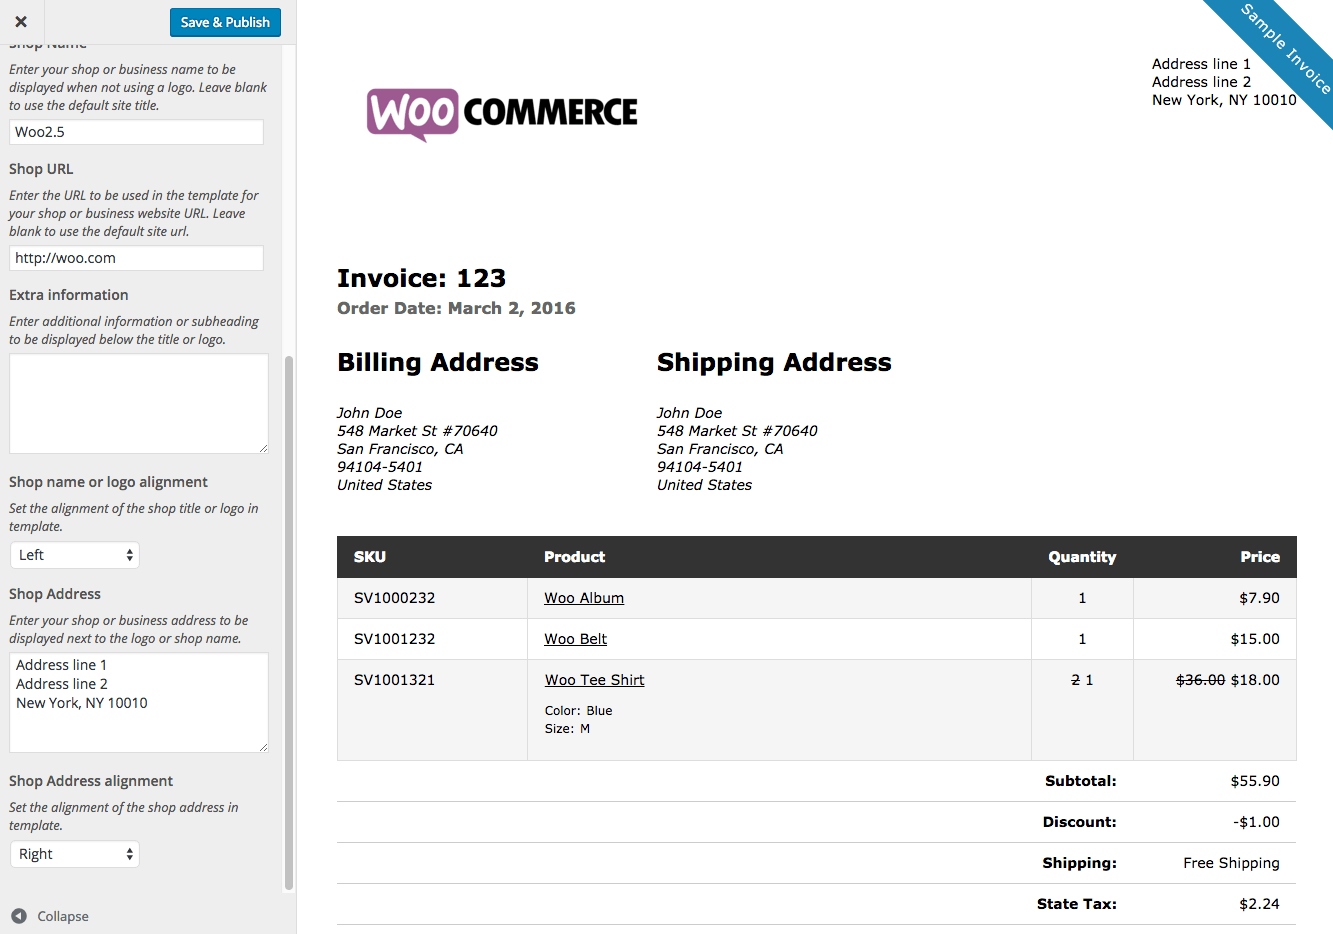 Laceychabertus  Seductive Woocommerce Print Invoices Amp Packing Lists  Woocommerce Docs With Inspiring Woocommerce Print Invoices  Packing Lists Customizer With Lovely Standard Invoice Template Free Also Self Employed Invoices In Addition Proforma Invoice Sample Excel And Car Invoice Price Canada As Well As Car Invoice Cost Additionally Invoice Order Form From Docswoocommercecom With Laceychabertus  Inspiring Woocommerce Print Invoices Amp Packing Lists  Woocommerce Docs With Lovely Woocommerce Print Invoices  Packing Lists Customizer And Seductive Standard Invoice Template Free Also Self Employed Invoices In Addition Proforma Invoice Sample Excel From Docswoocommercecom